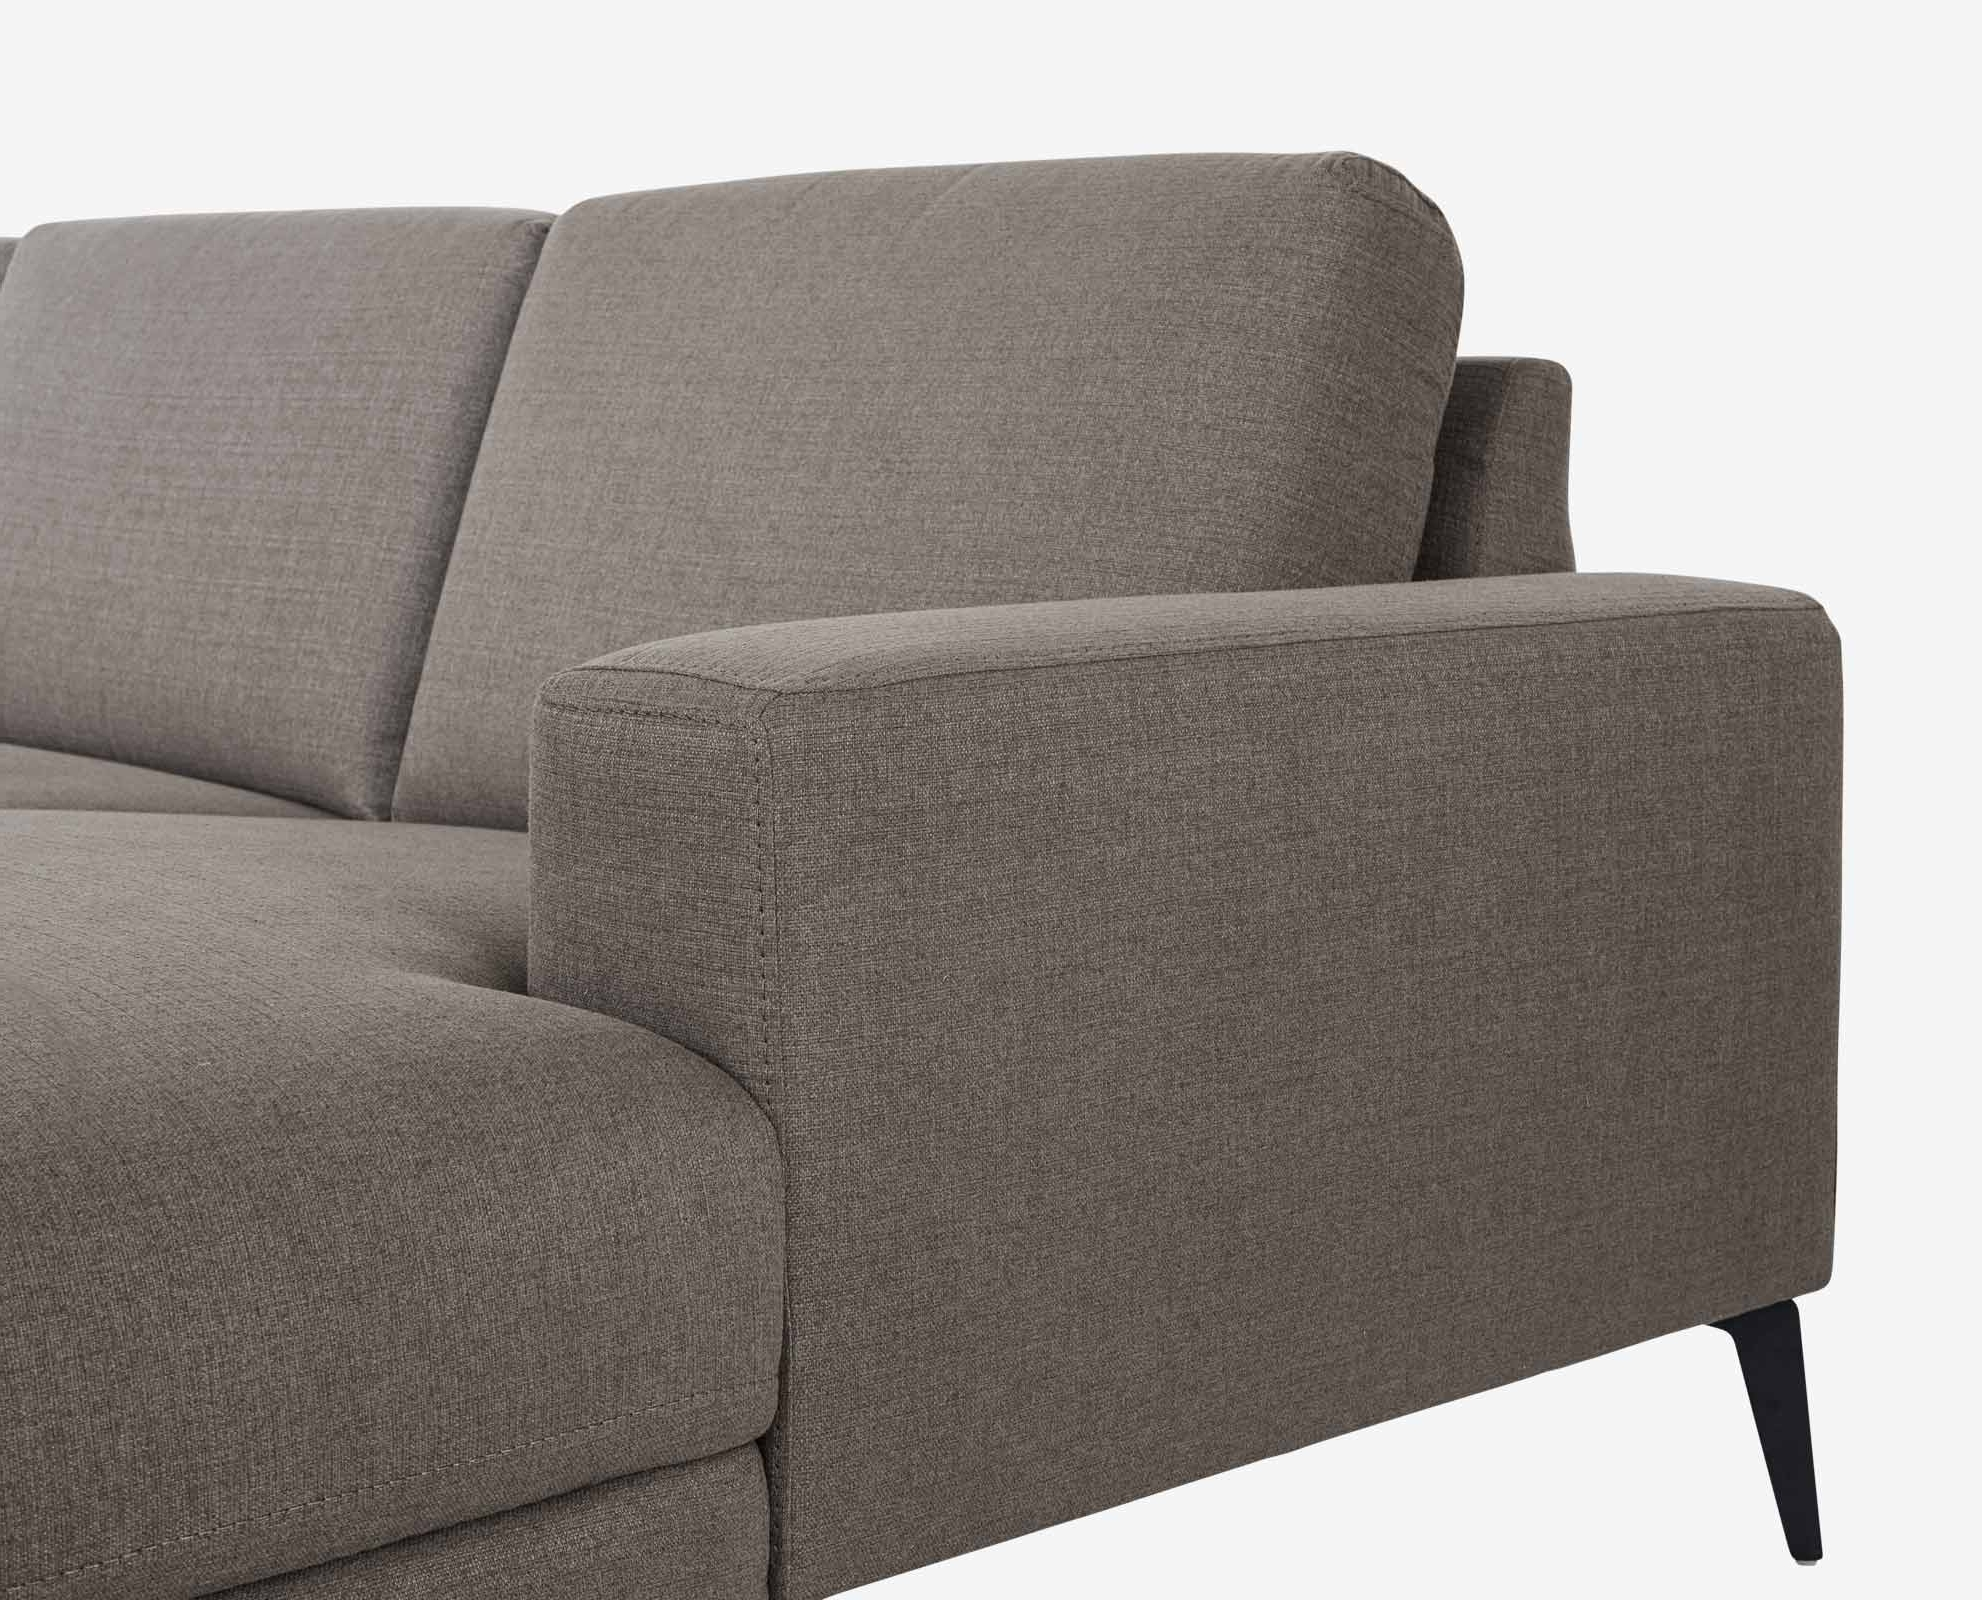 Preferred Individual Piece Sectional Sofas Pertaining To Beautiful Low Profile Sectional Sofas 97 In Individual Piece (View 20 of 20)